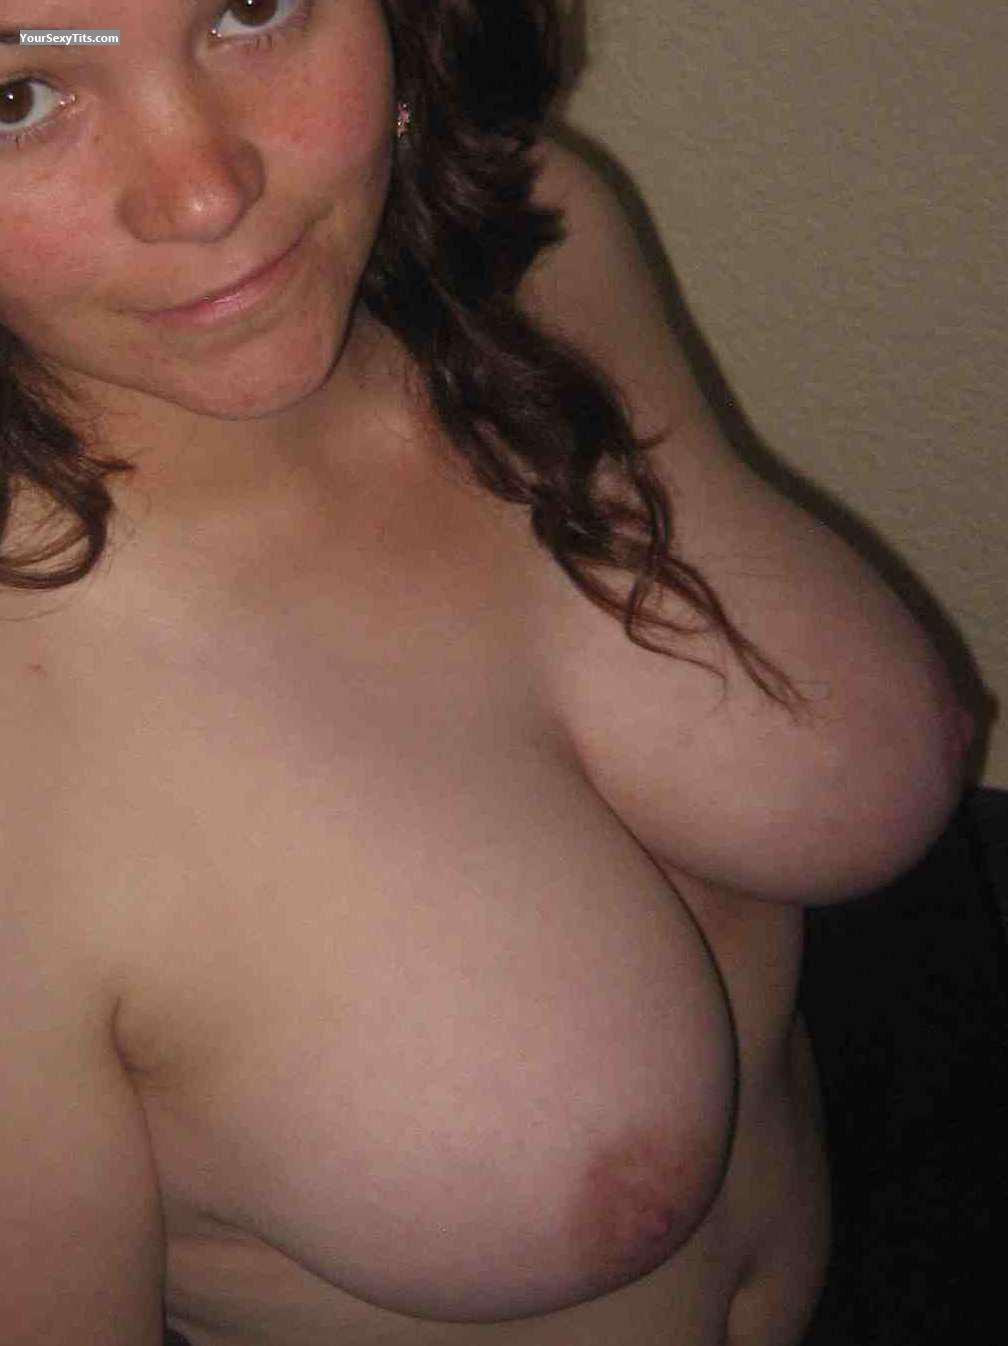 Tit Flash: My Friend's Big Tits - Yummy from Denmark